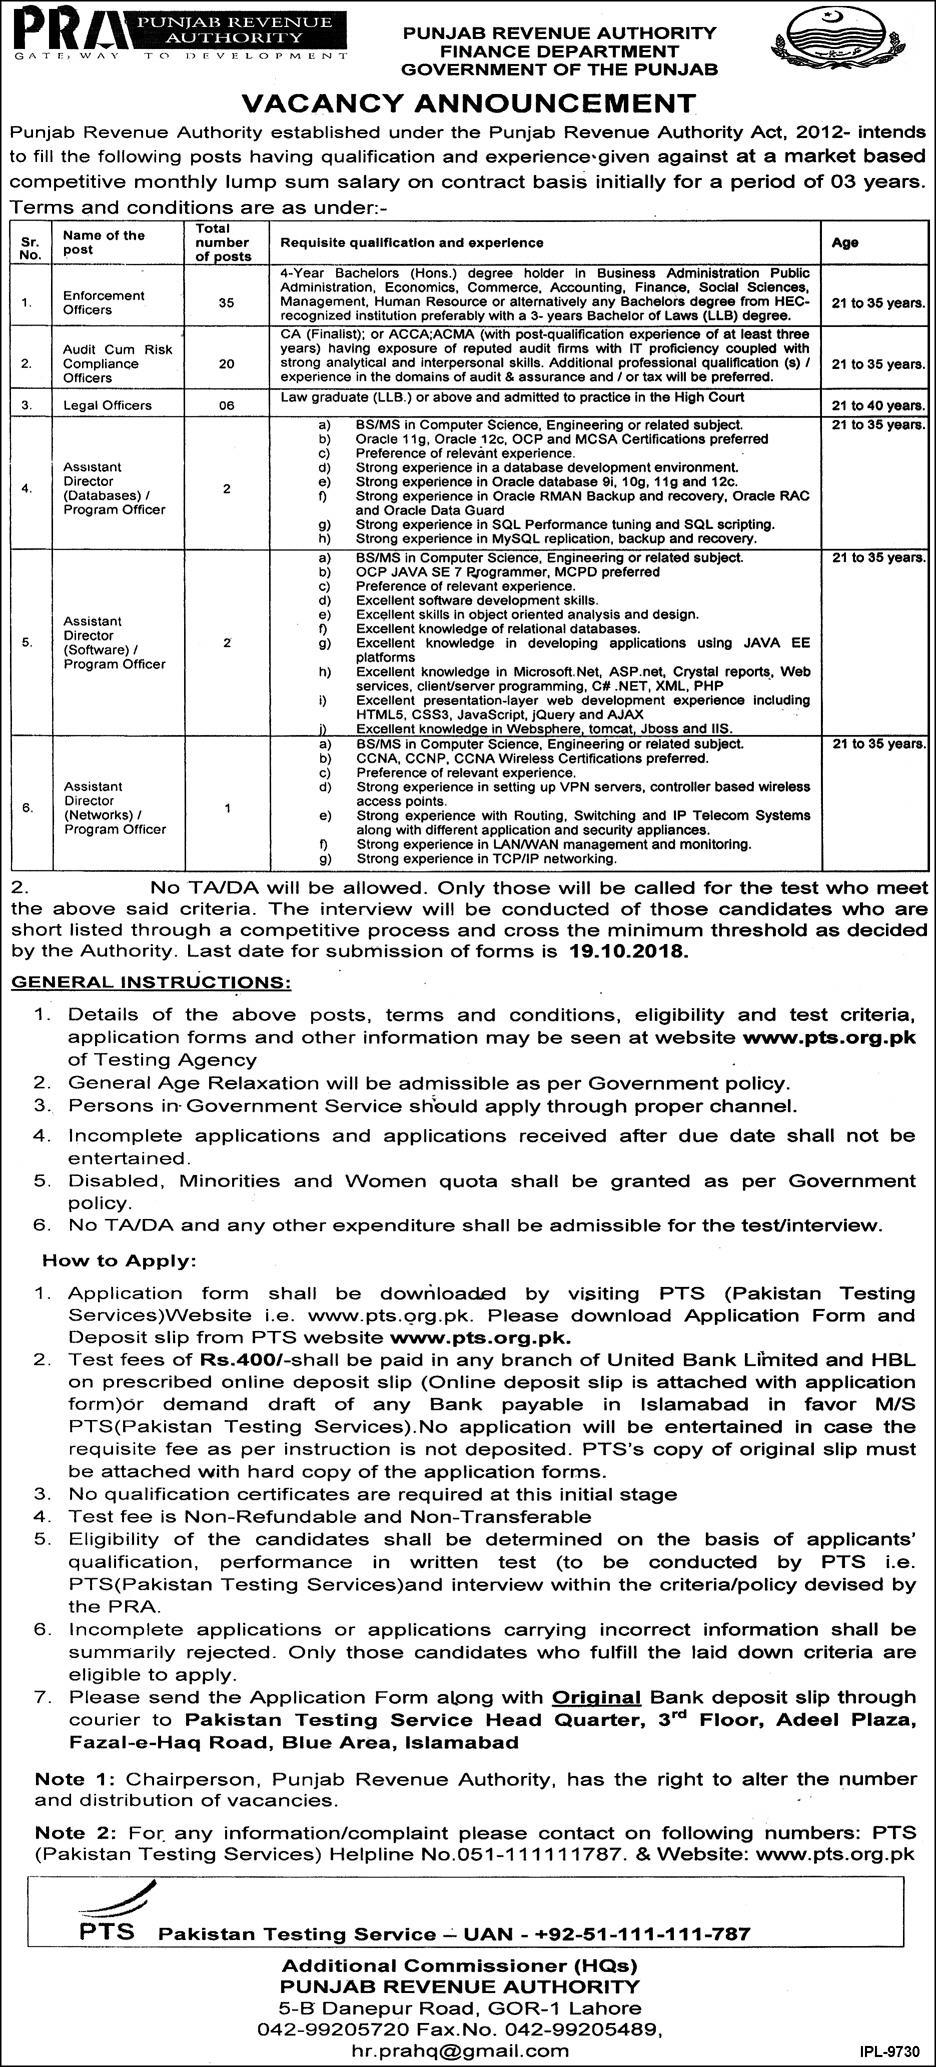 PRA Punjab Revenue Authority Finance Department Jobs 2018